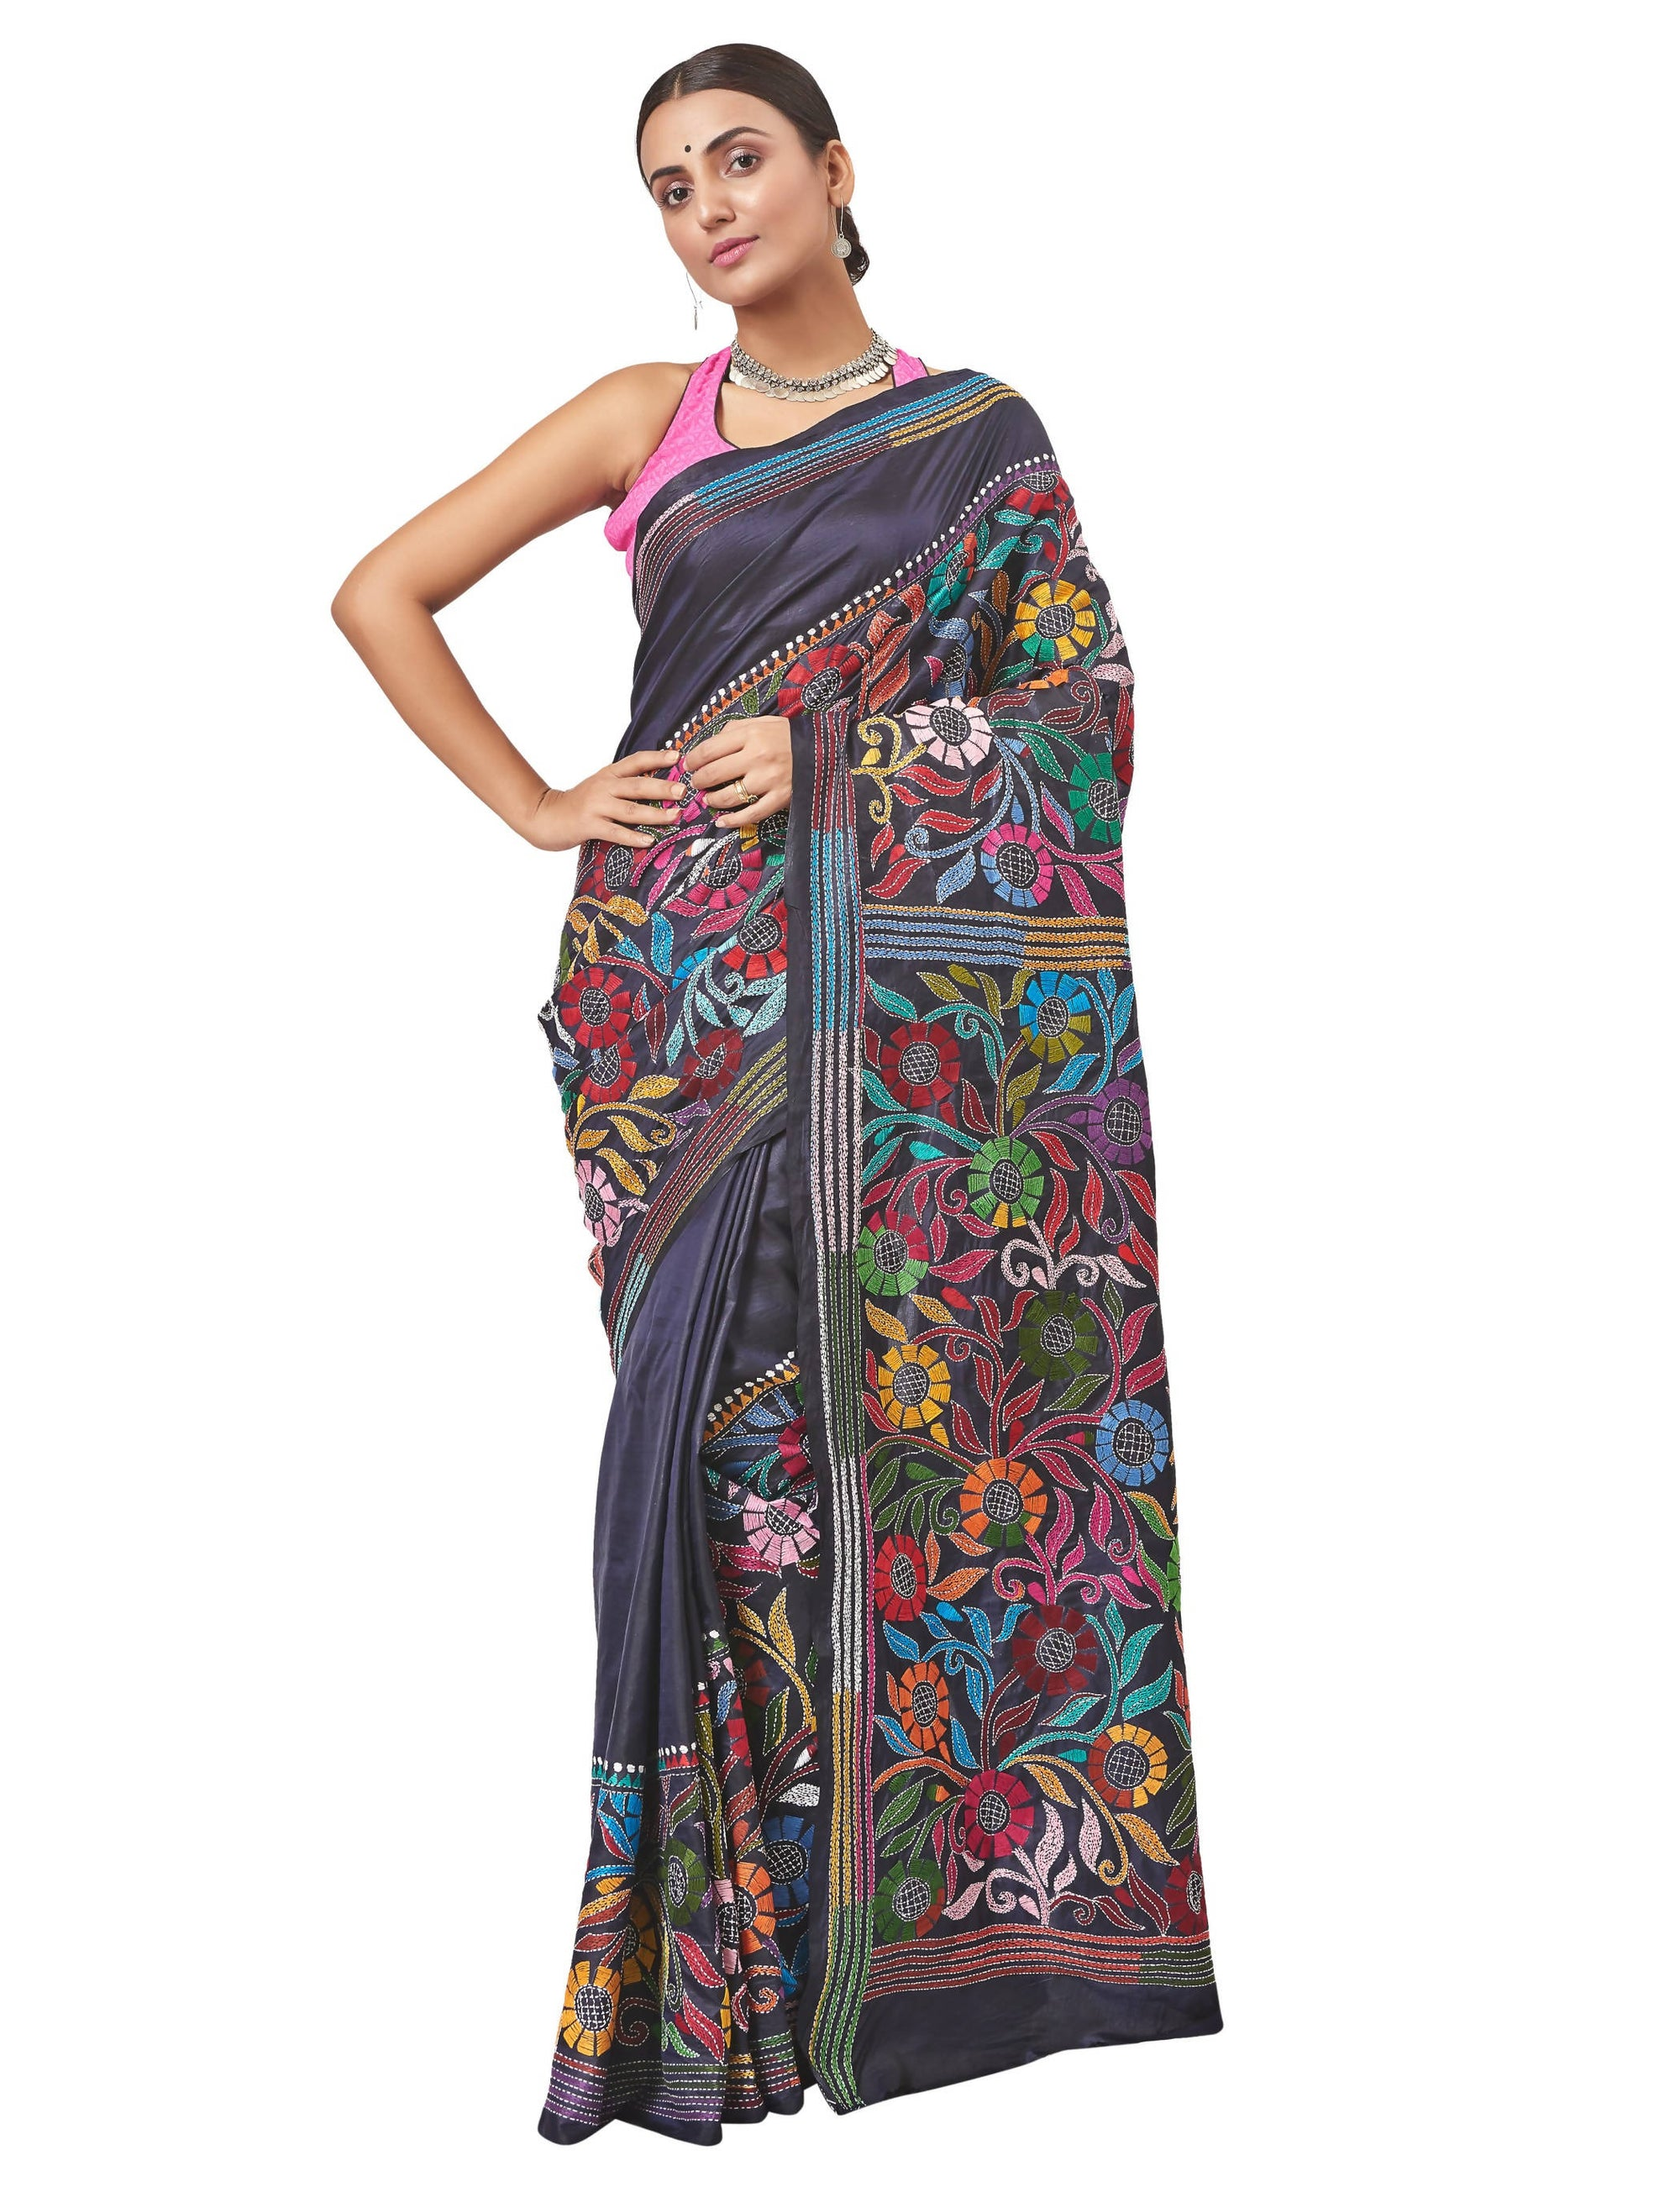 Biswa Bangla Handloom Kantha Silk Saree - Multicolour